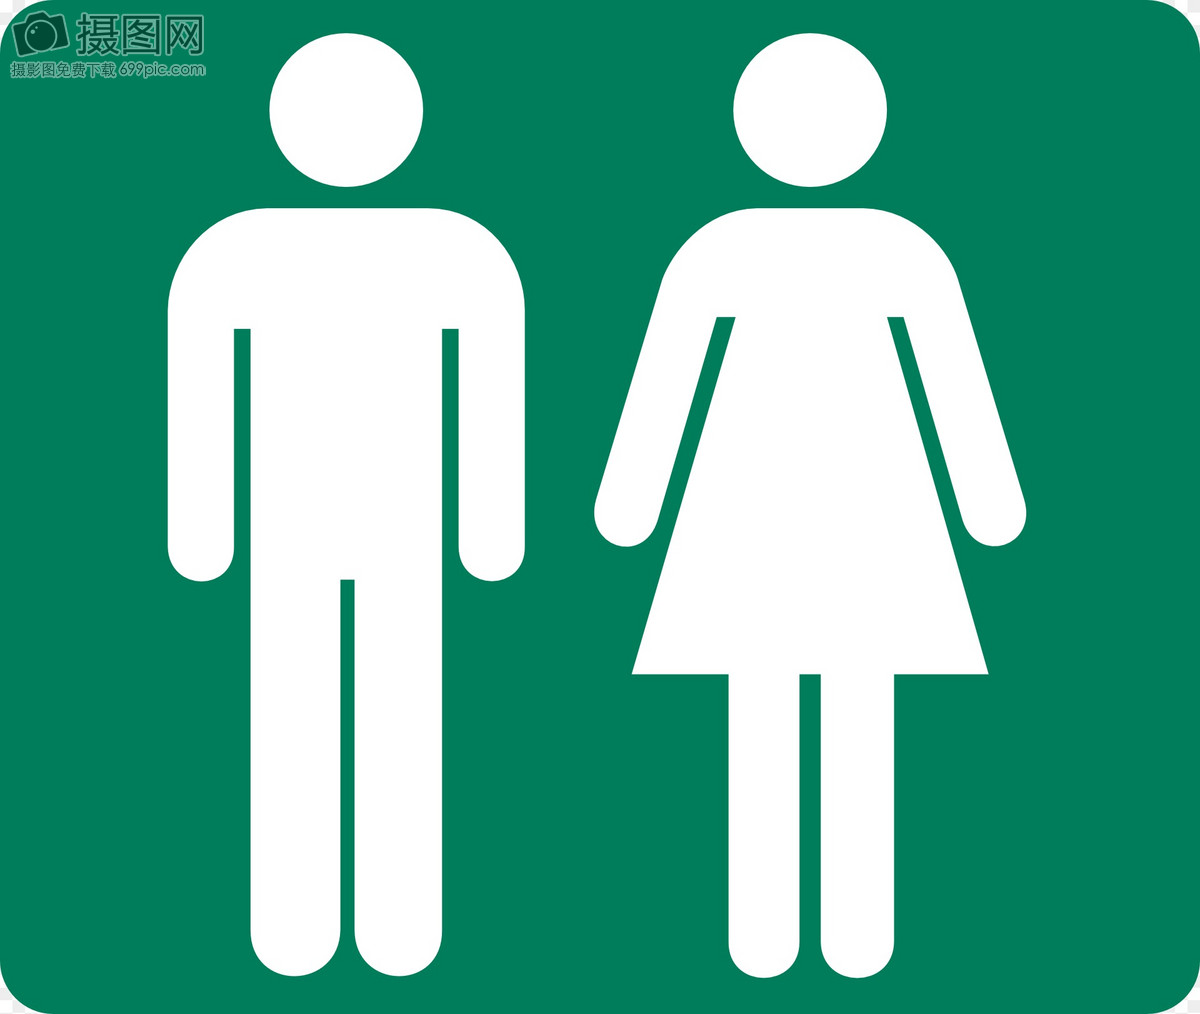 Toilet logo icon graphics image_picture free download ...